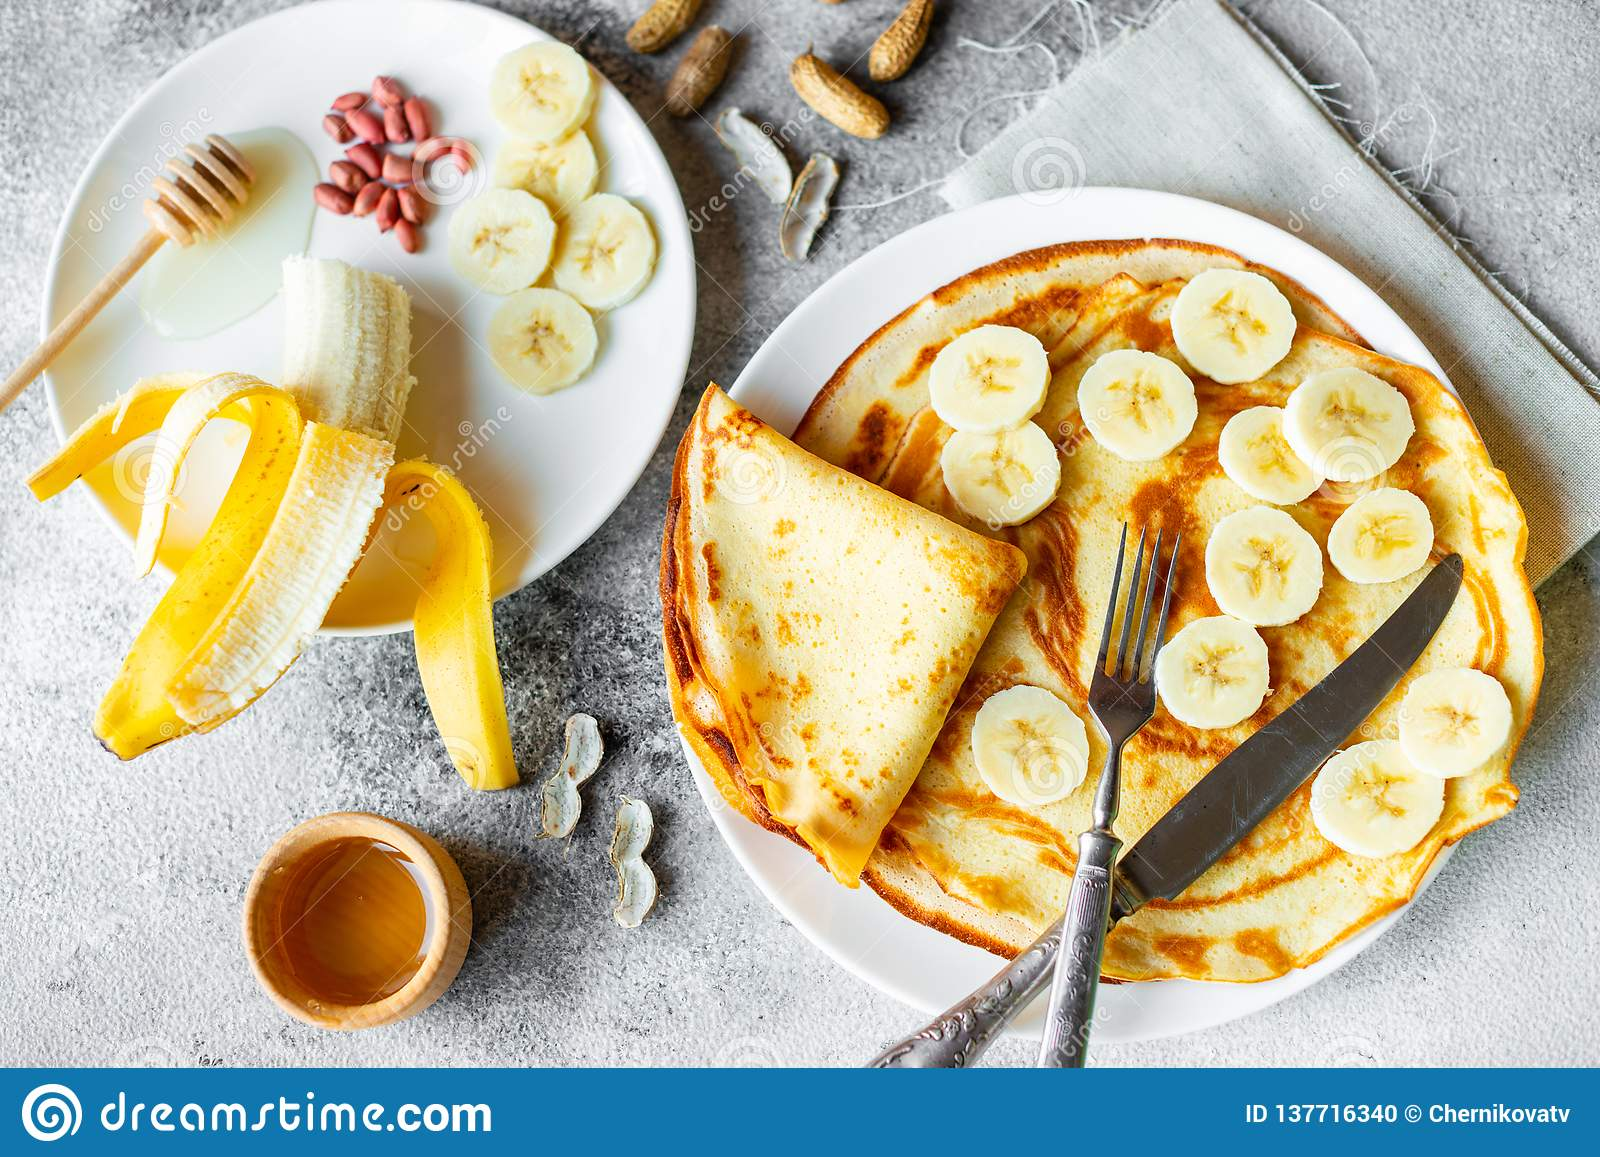 Food, dessert, pastries, pancake, pie. Tasty beautiful pancakes with banana and honey